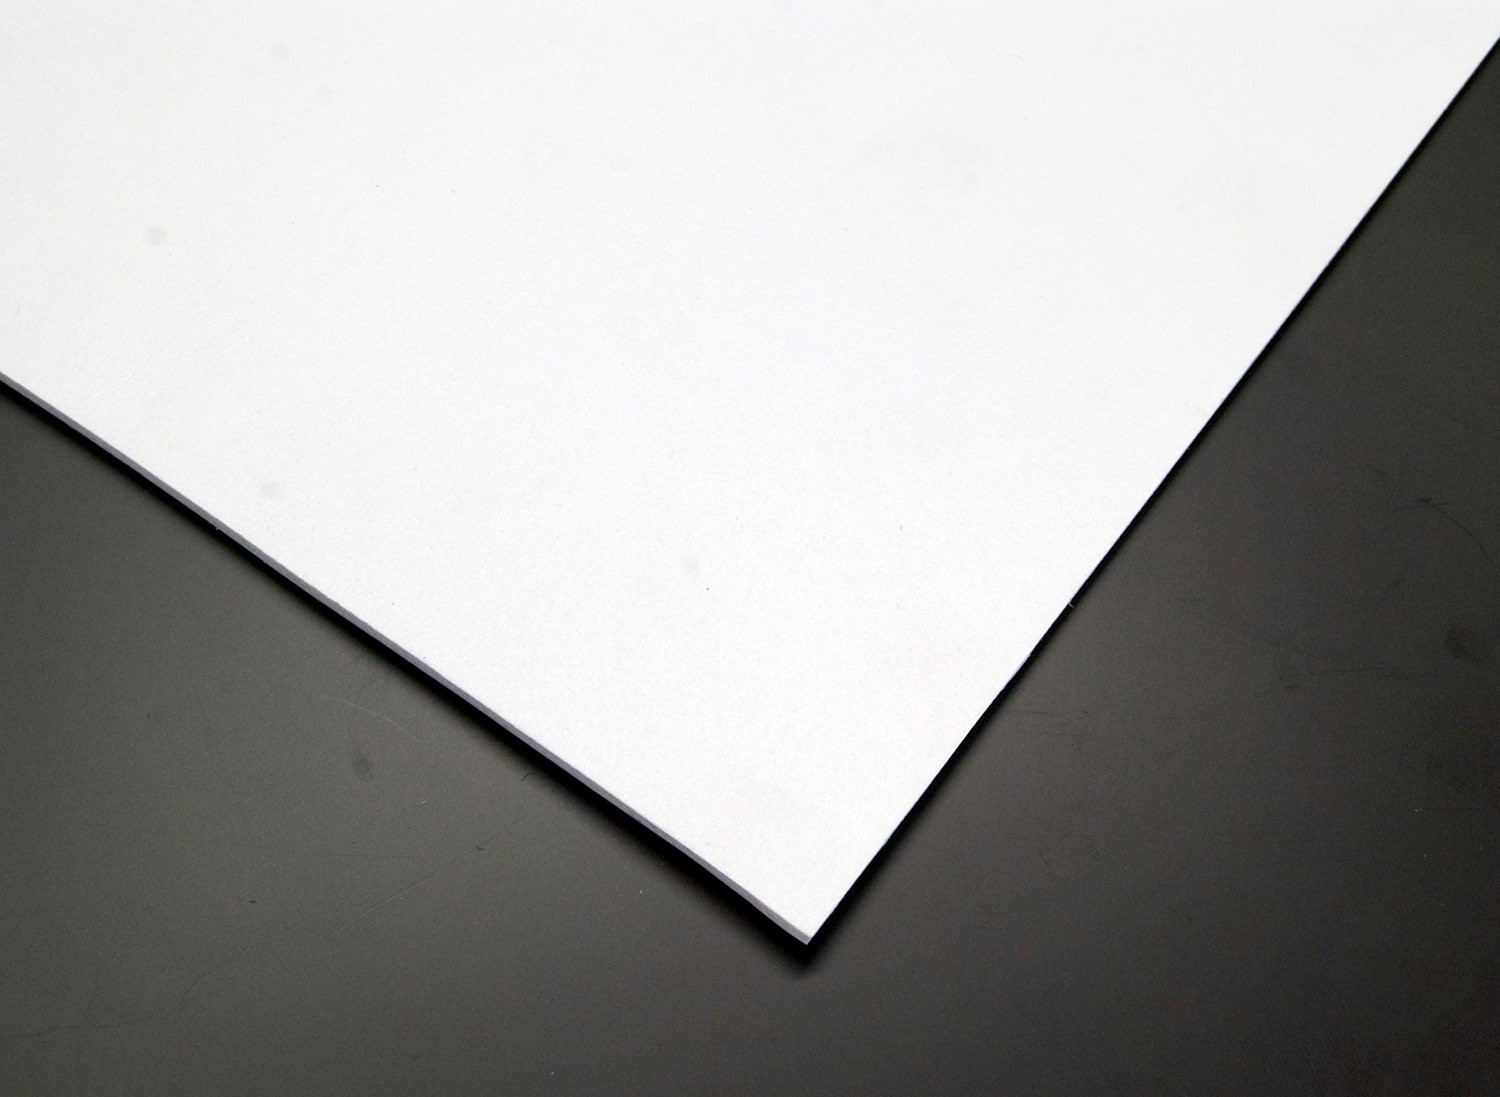 3mm Foamex PVC 2440 x 1220mm (White)